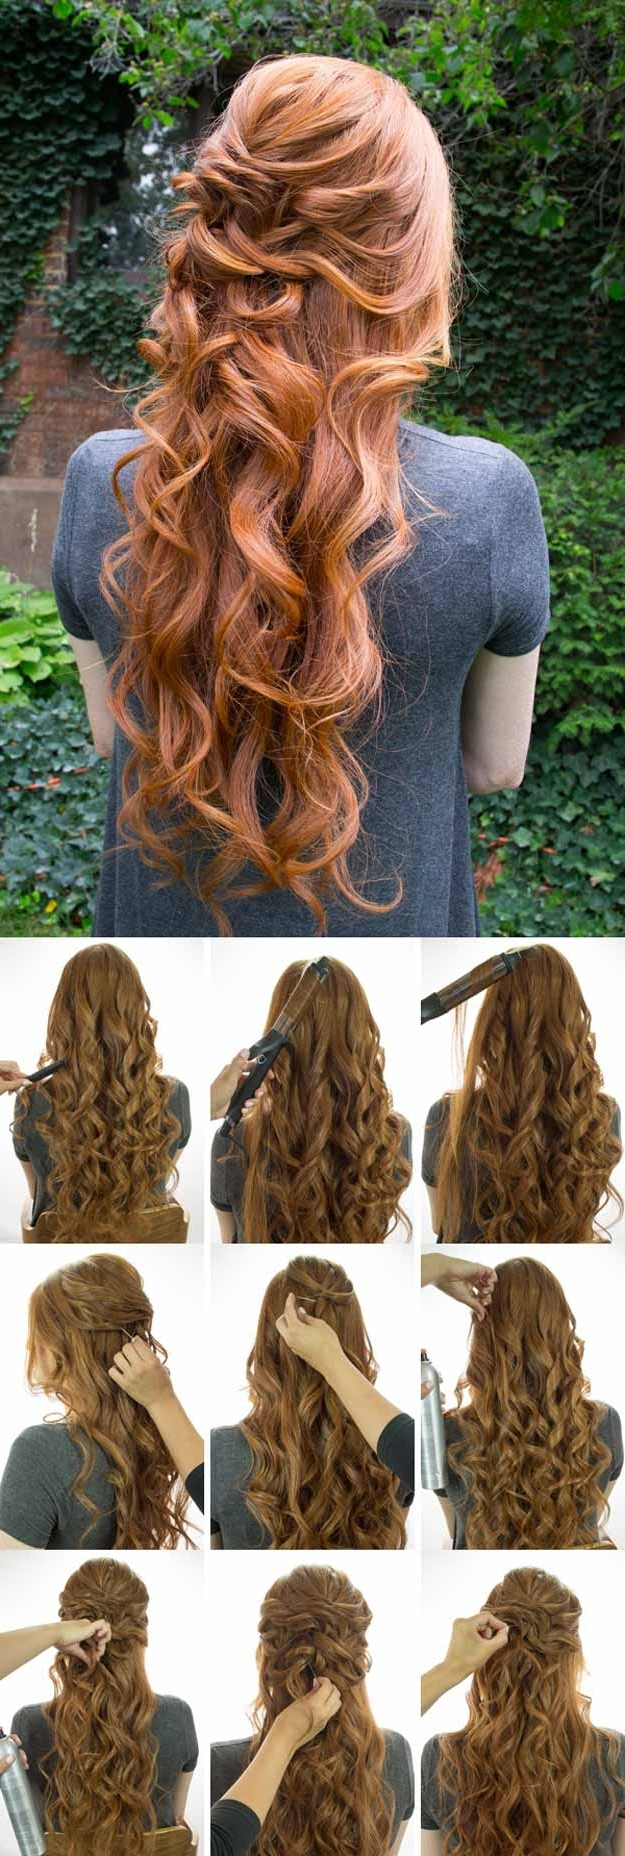 31 Wedding Hairstyles For Long Hair – The Goddess Throughout Most Up To Date Wedding Hairstyles For Long Loose Hair (View 3 of 15)